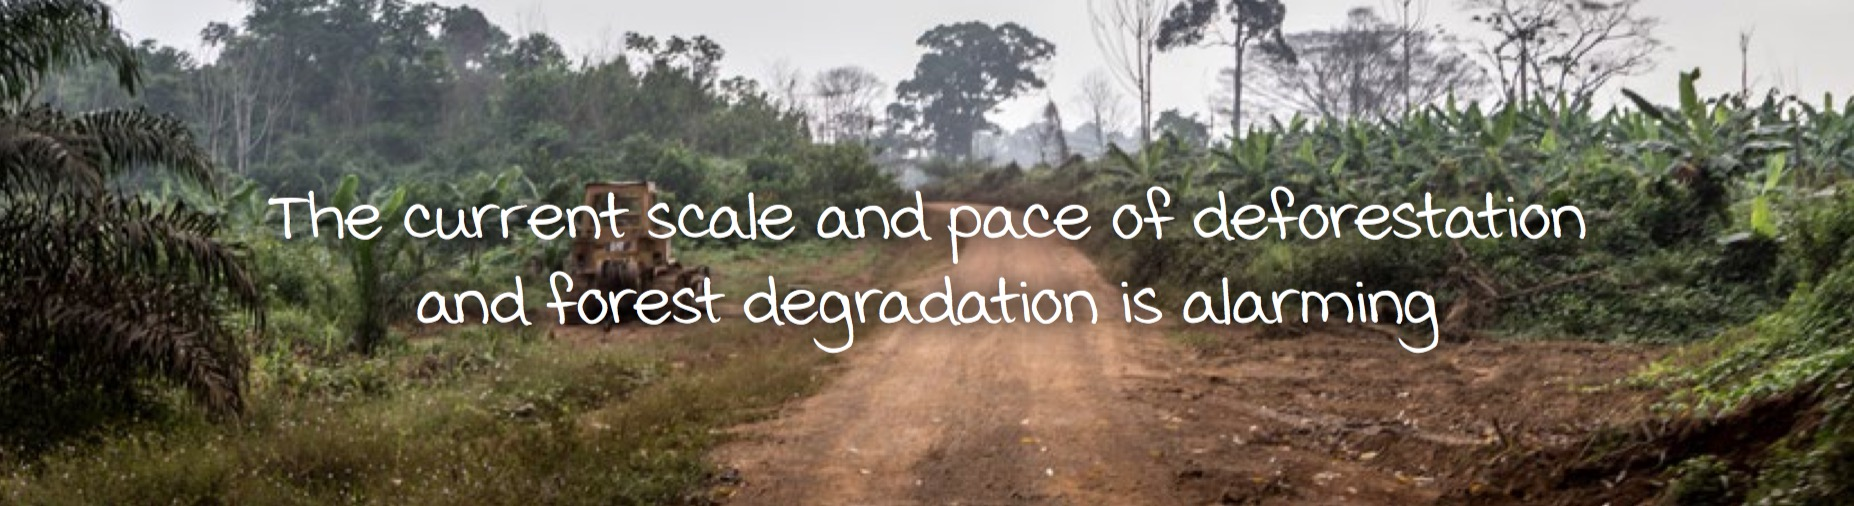 The current scale and pace of deforestation and forest degradation is alarming